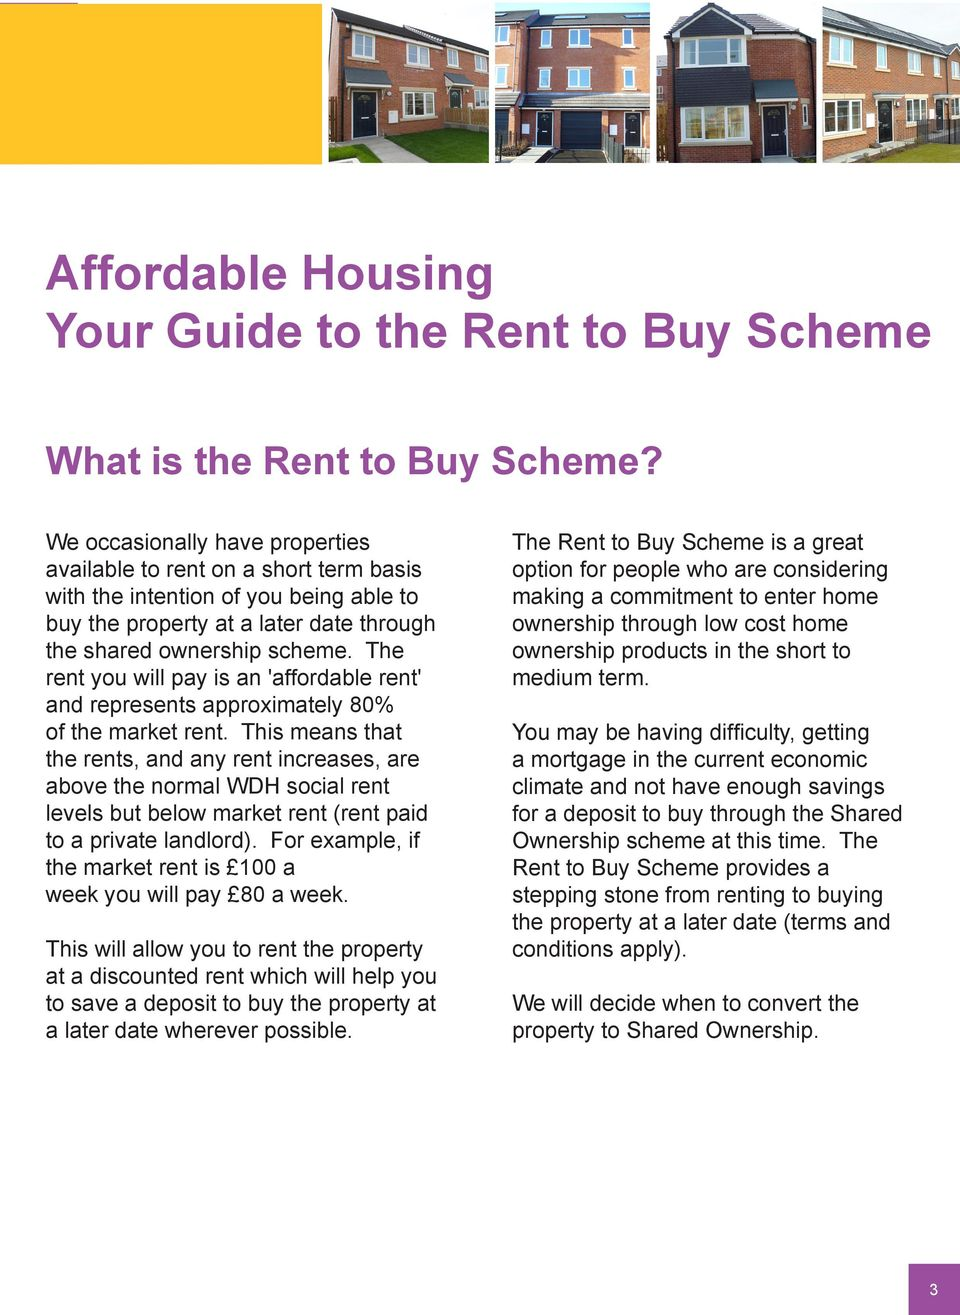 The rent you will pay is an 'affordable rent' and represents approximately 80% of the market rent.